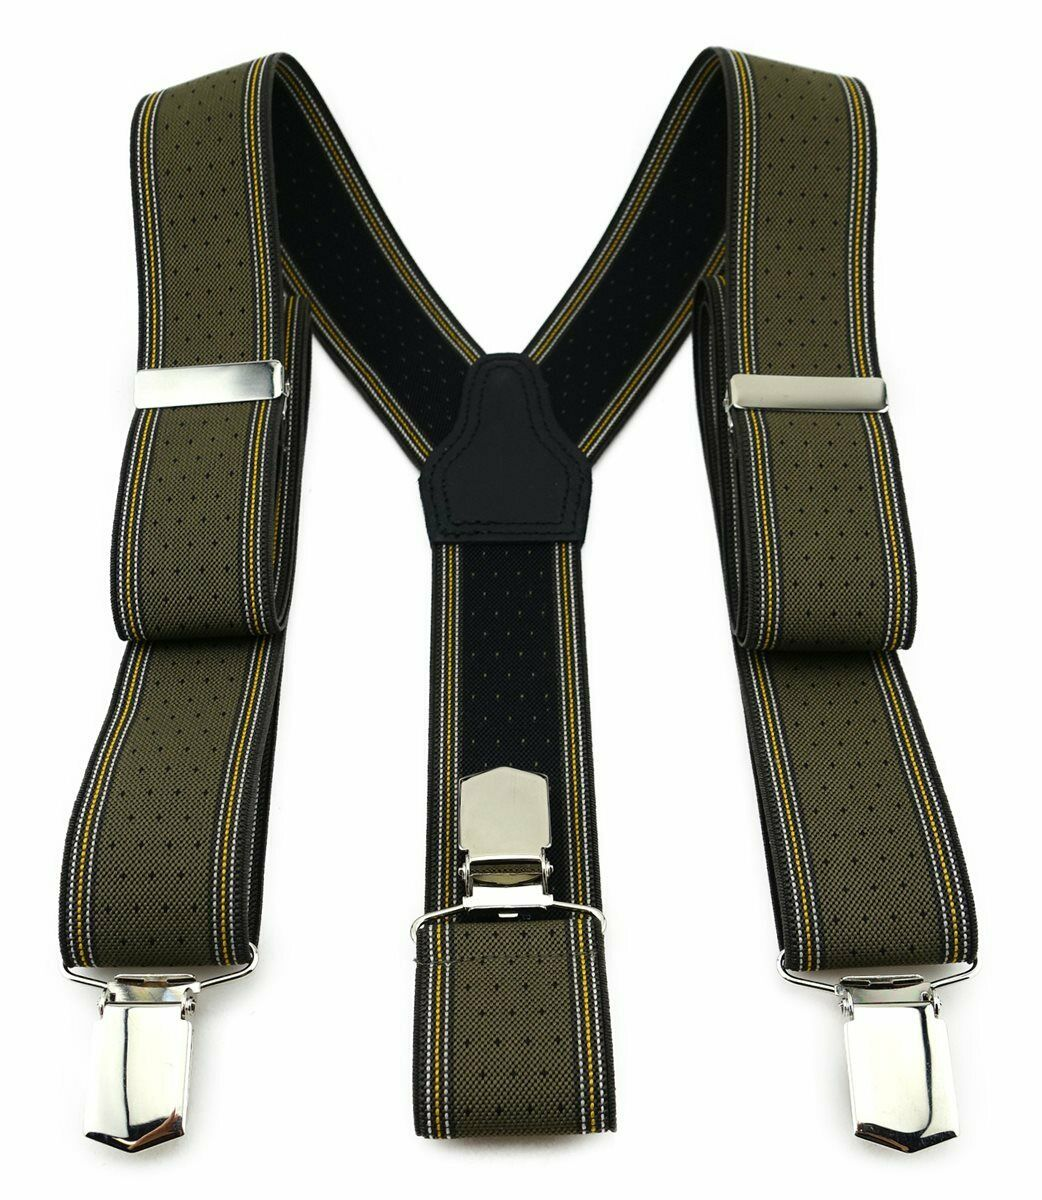 Tigertie Unisex Braces with 3 EXTRA STRONG CLIPS-Olive Gold Silver